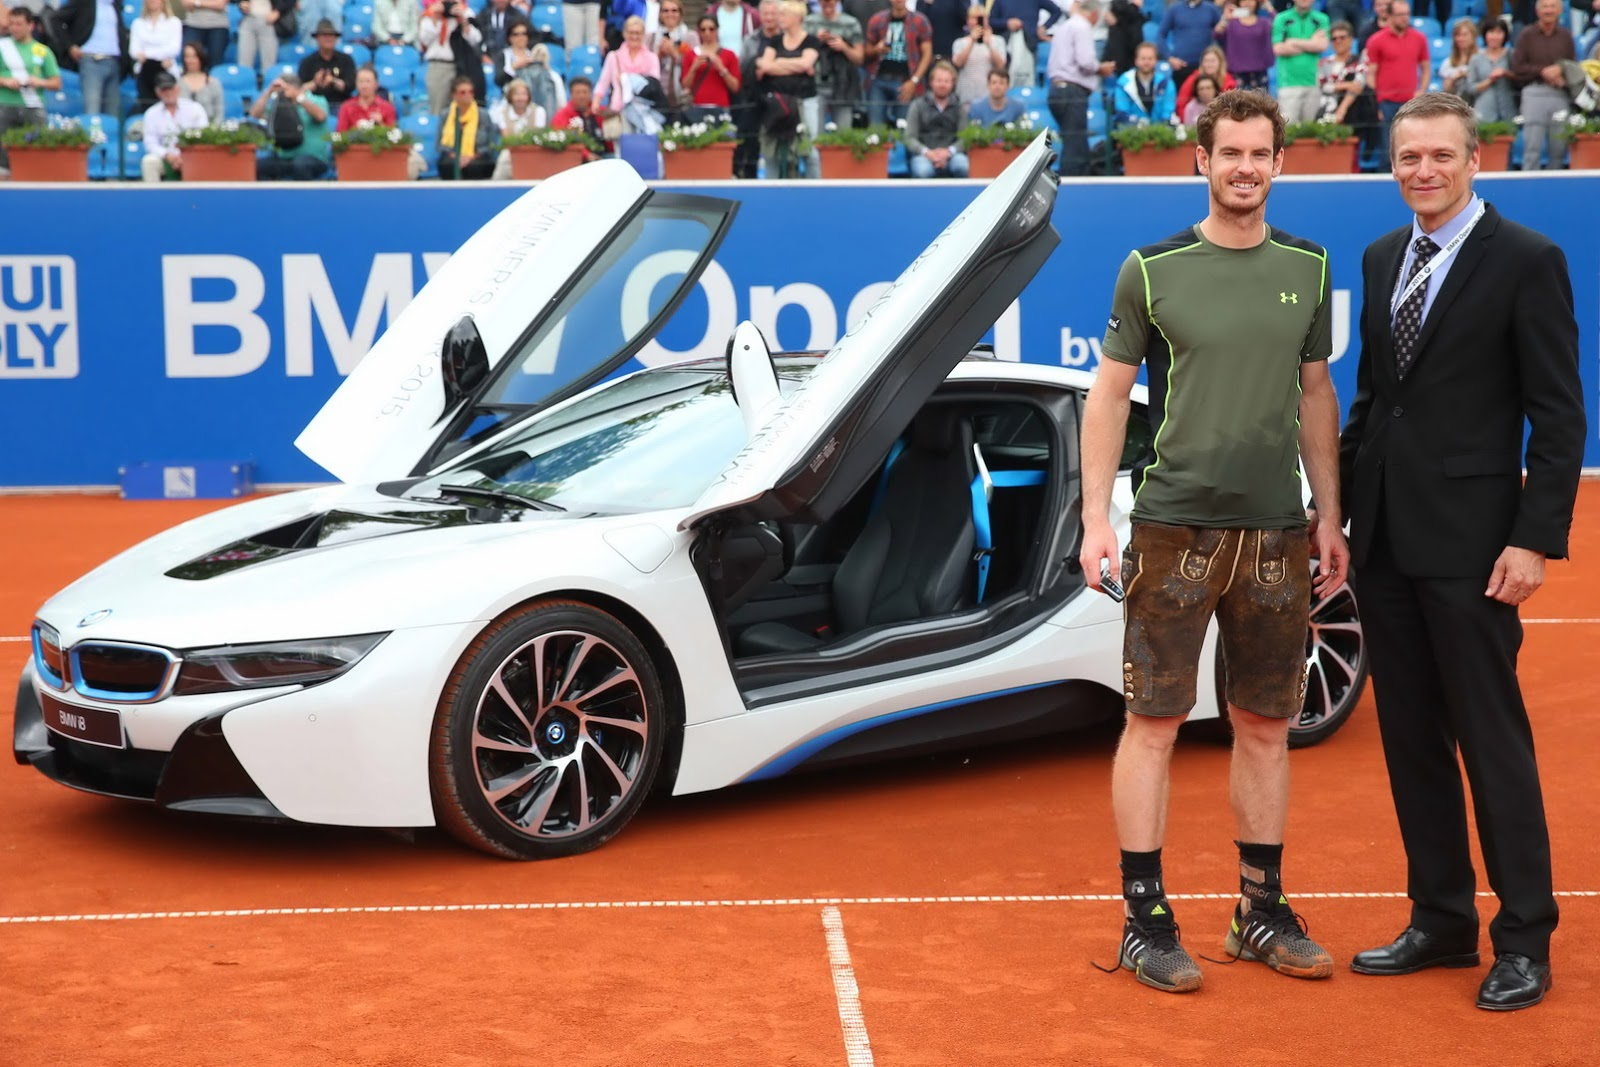 Andy Murray Awarded 2015 BMW i8